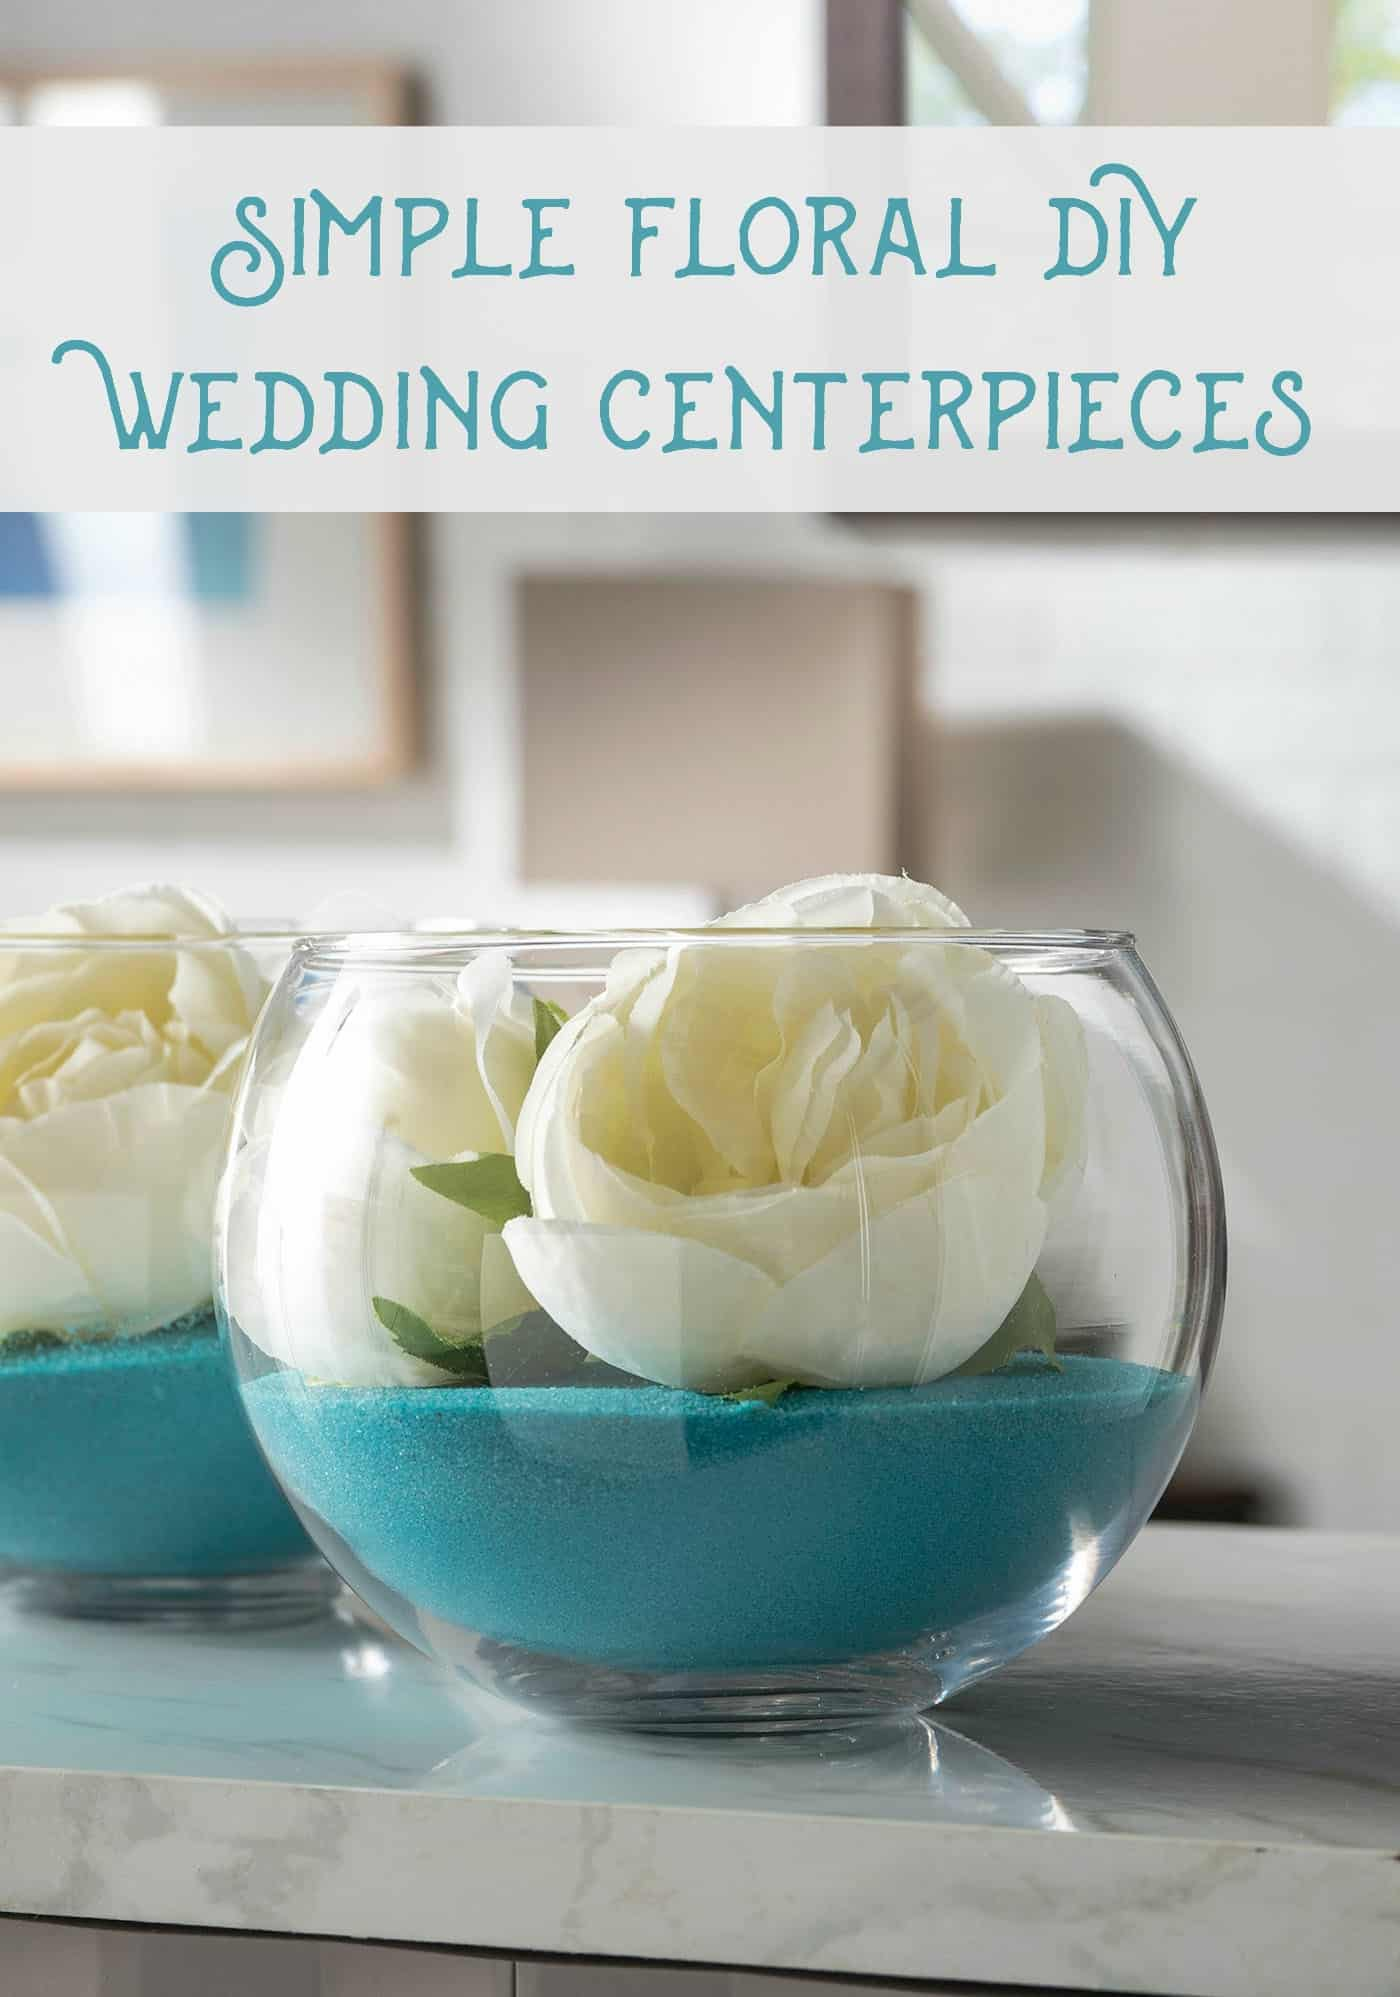 Quick floral diy wedding centerpieces diycandy